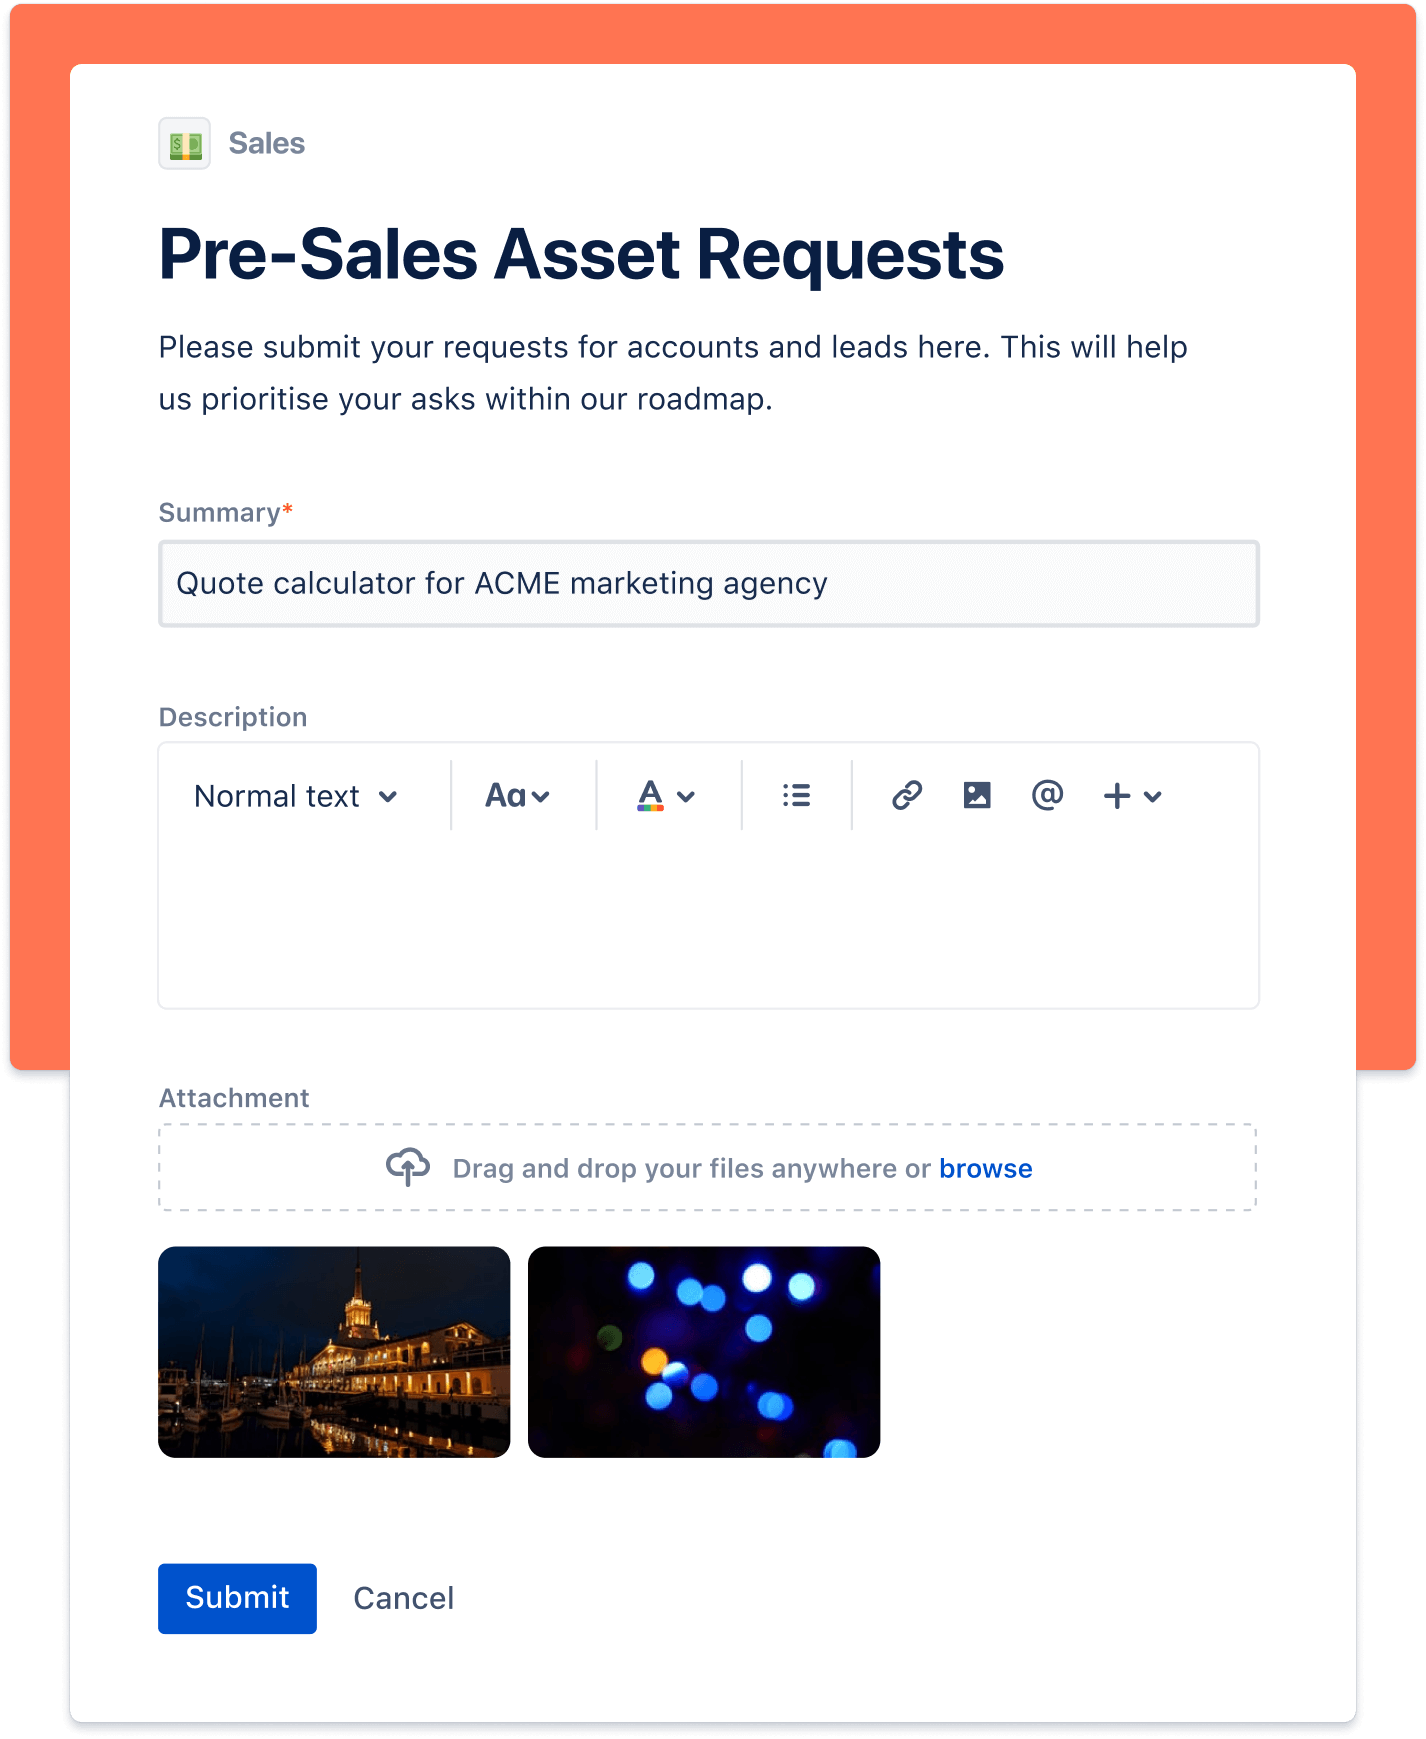 Pre-sales asset request screenshot